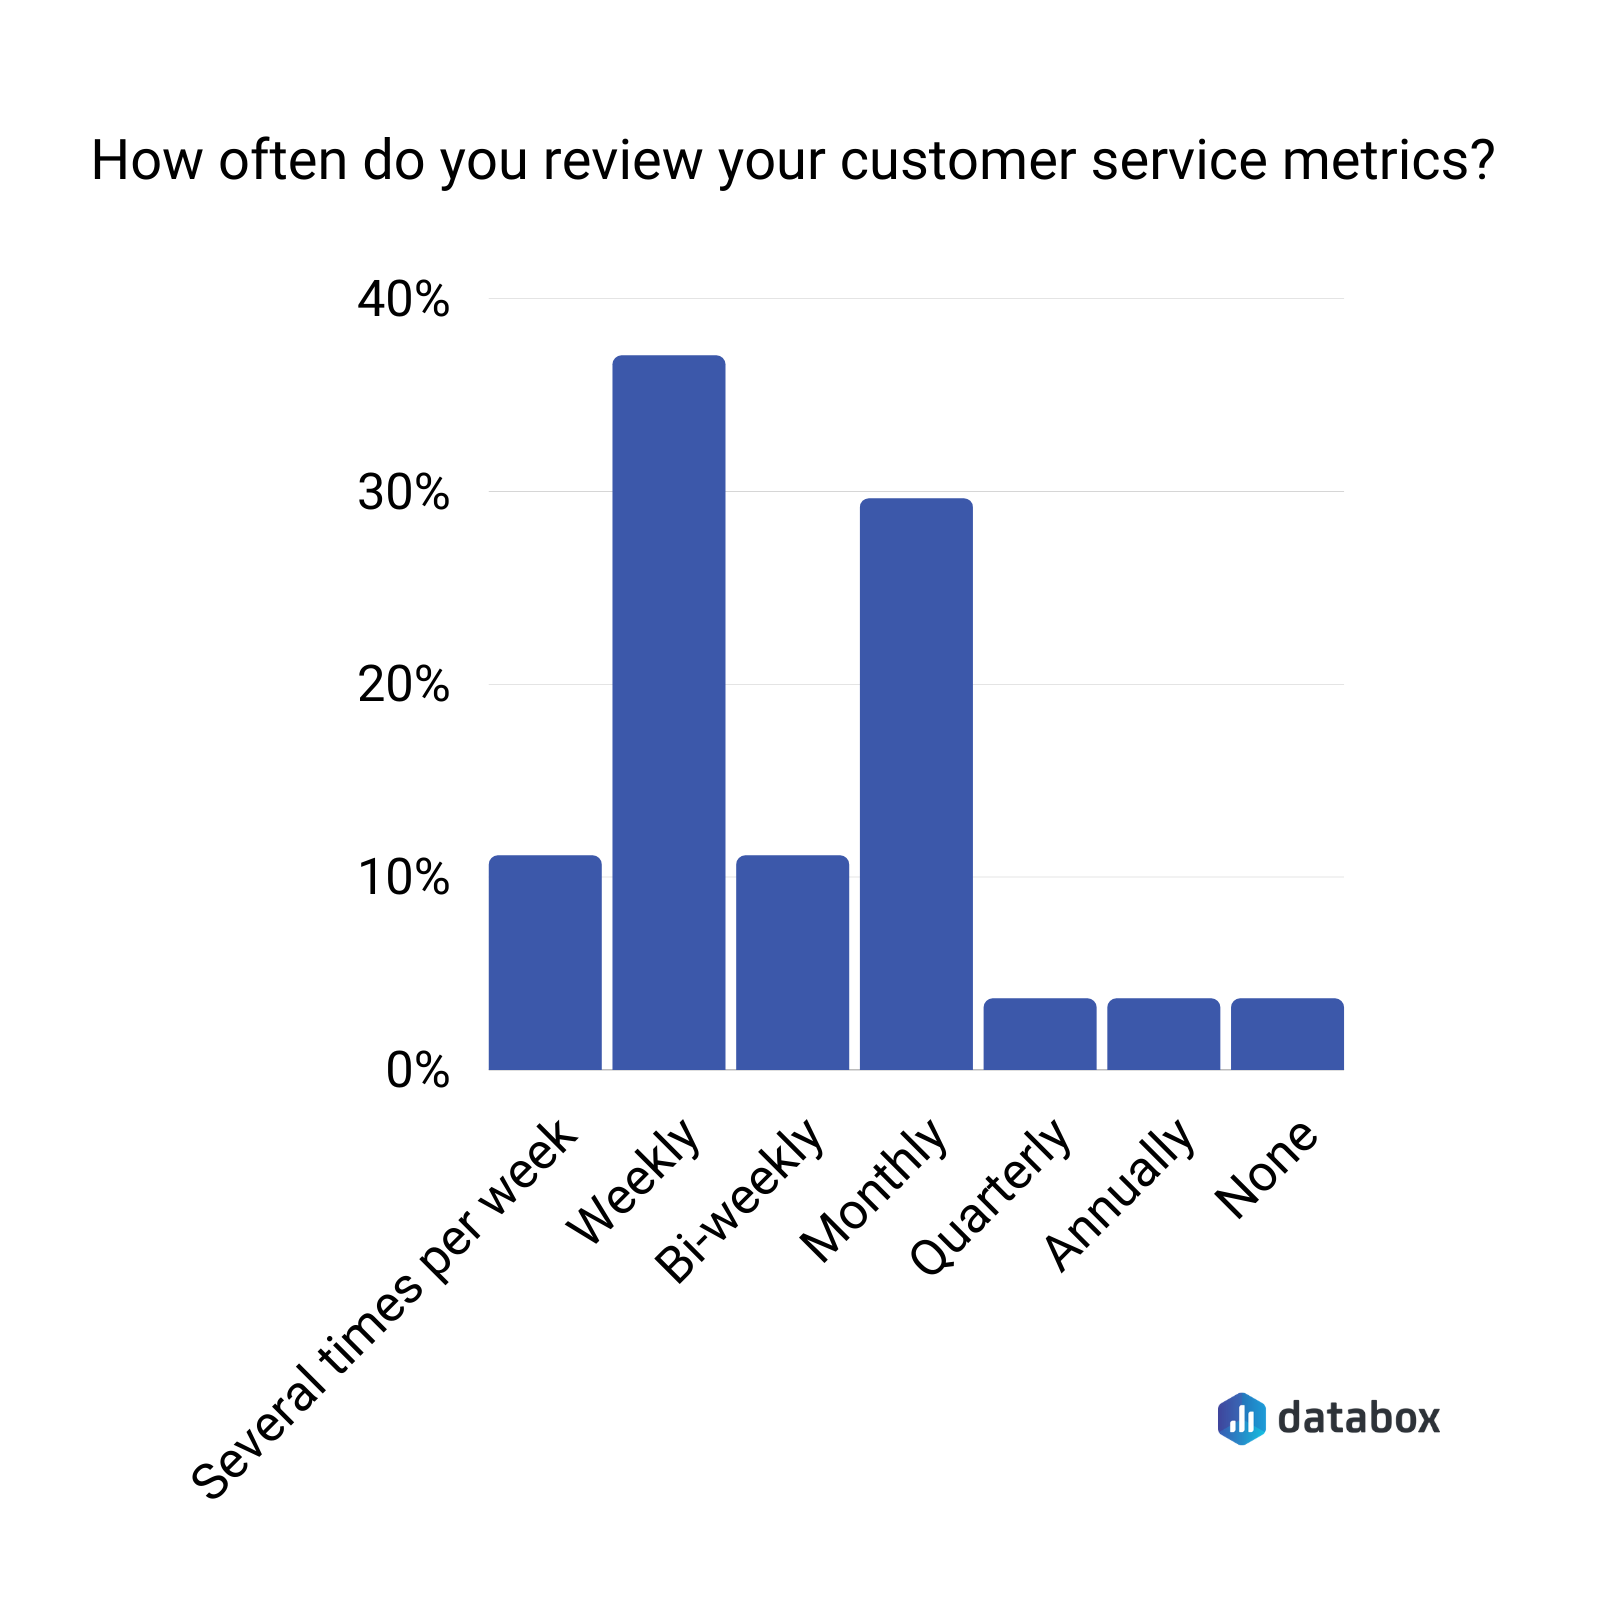 customer service metrics review frequency data graph